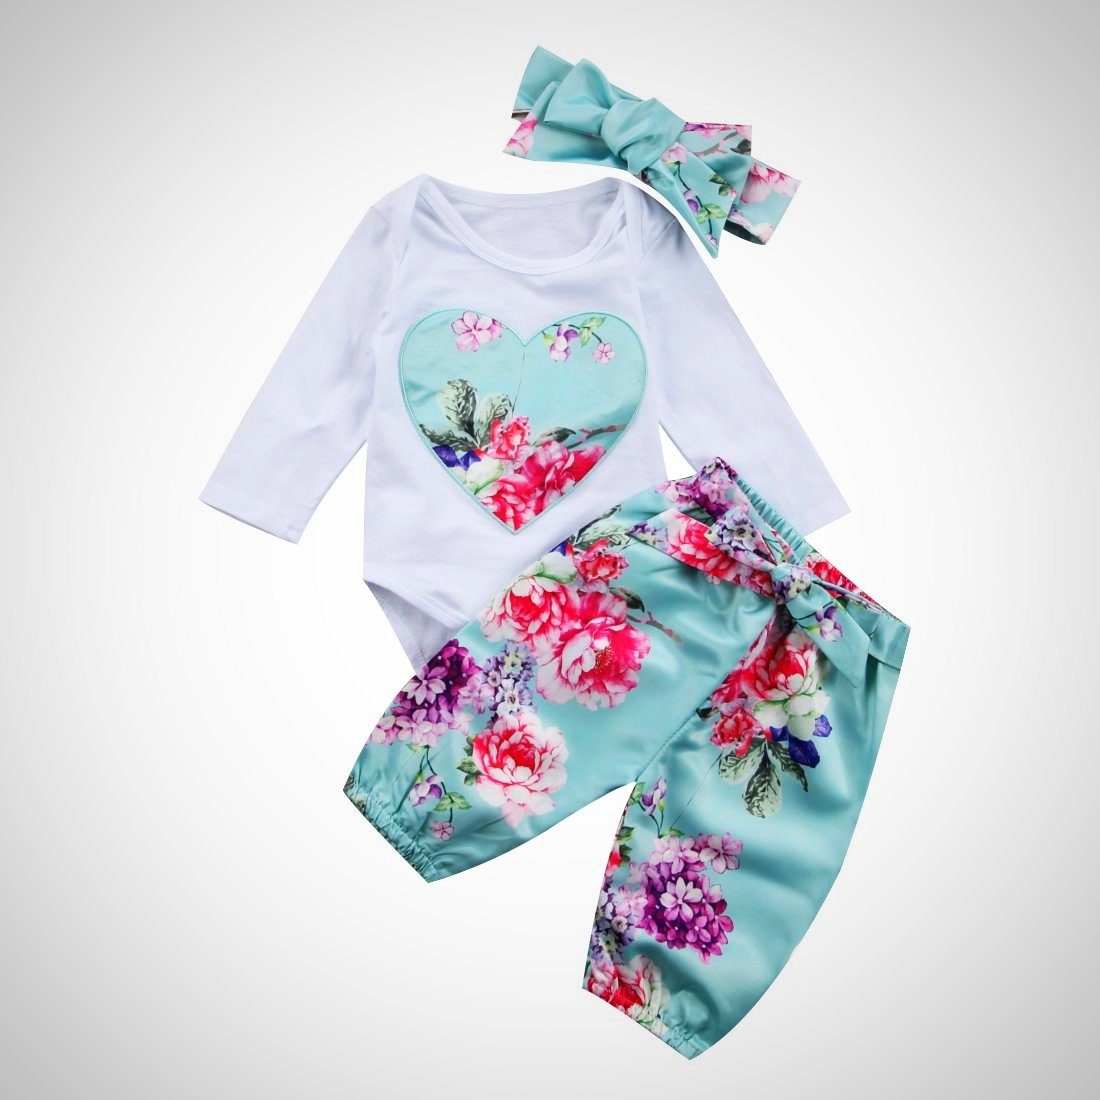 Newborn baby girl Romper suit - Juniorshopstyle